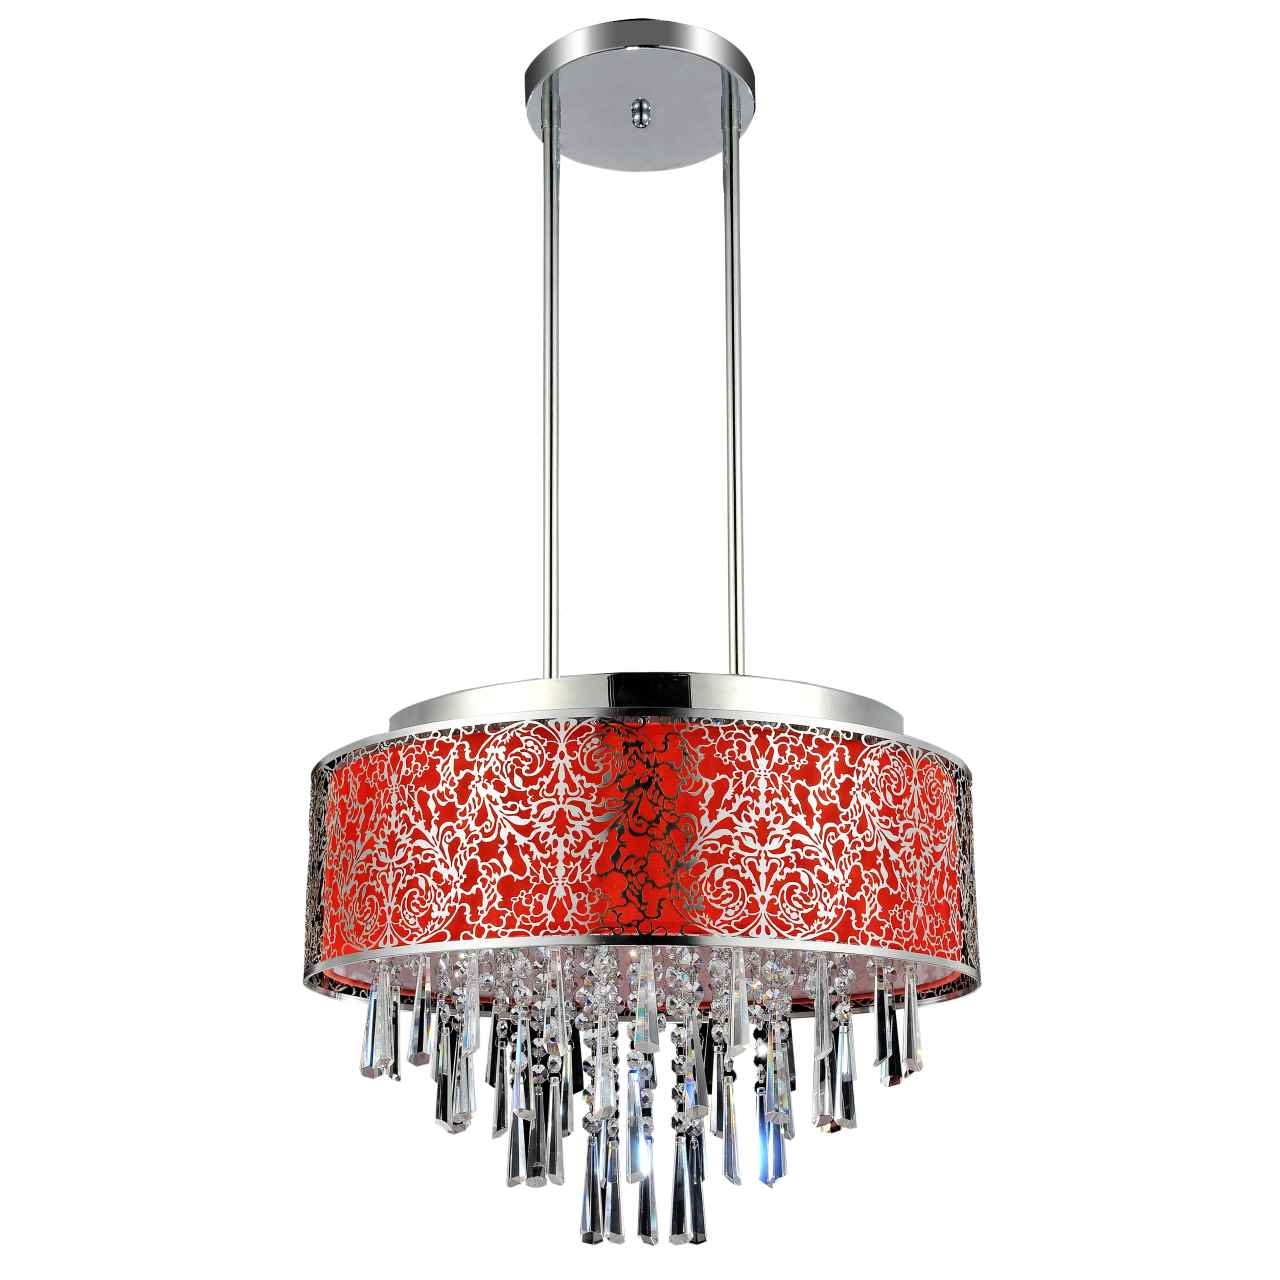 Brizzo lighting stores 20 drago modern crystal round pendant picture of 20 drago modern crystal round pendant chandelier red fabric stainless steel shade 9 mozeypictures Gallery